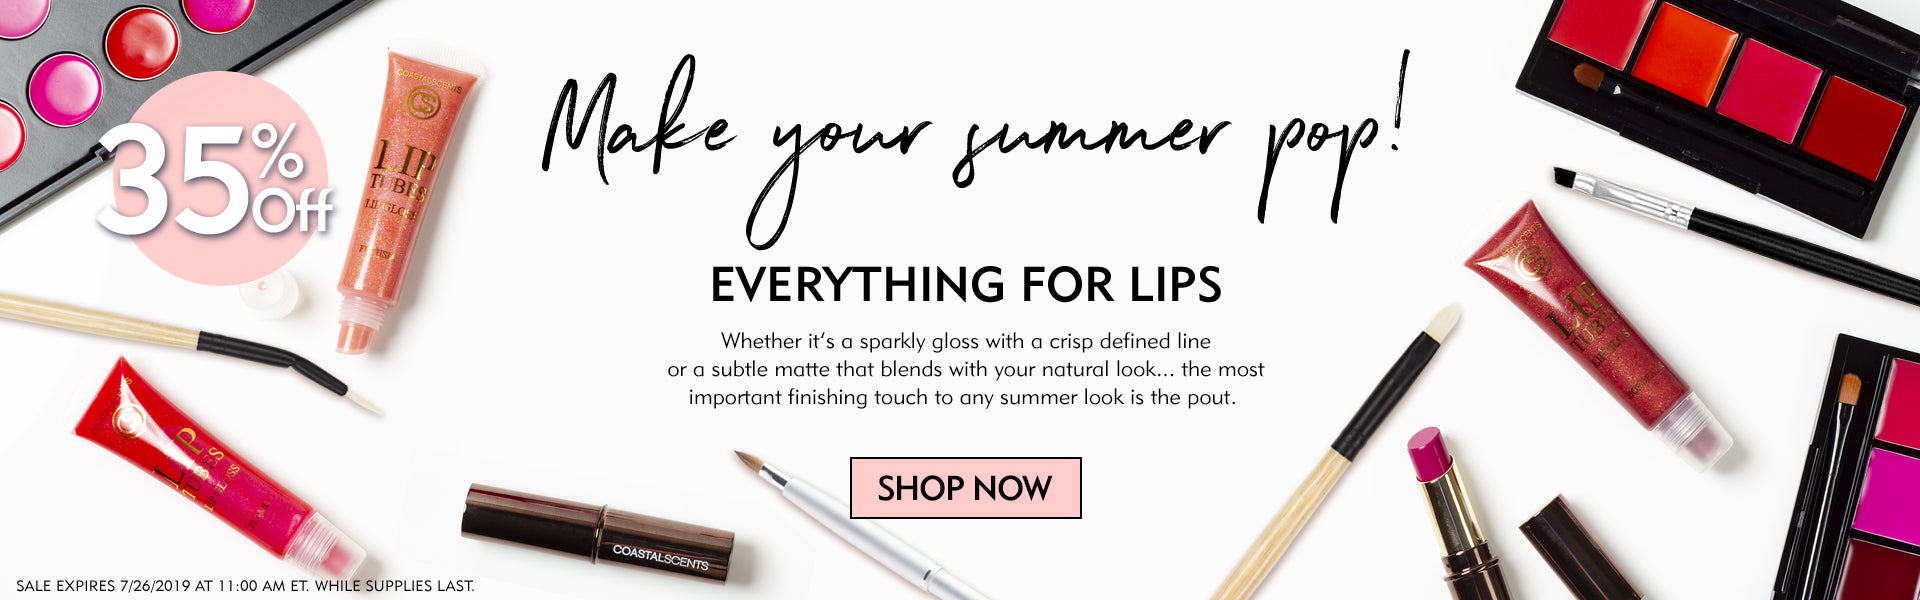 35% Off Everything for Lips